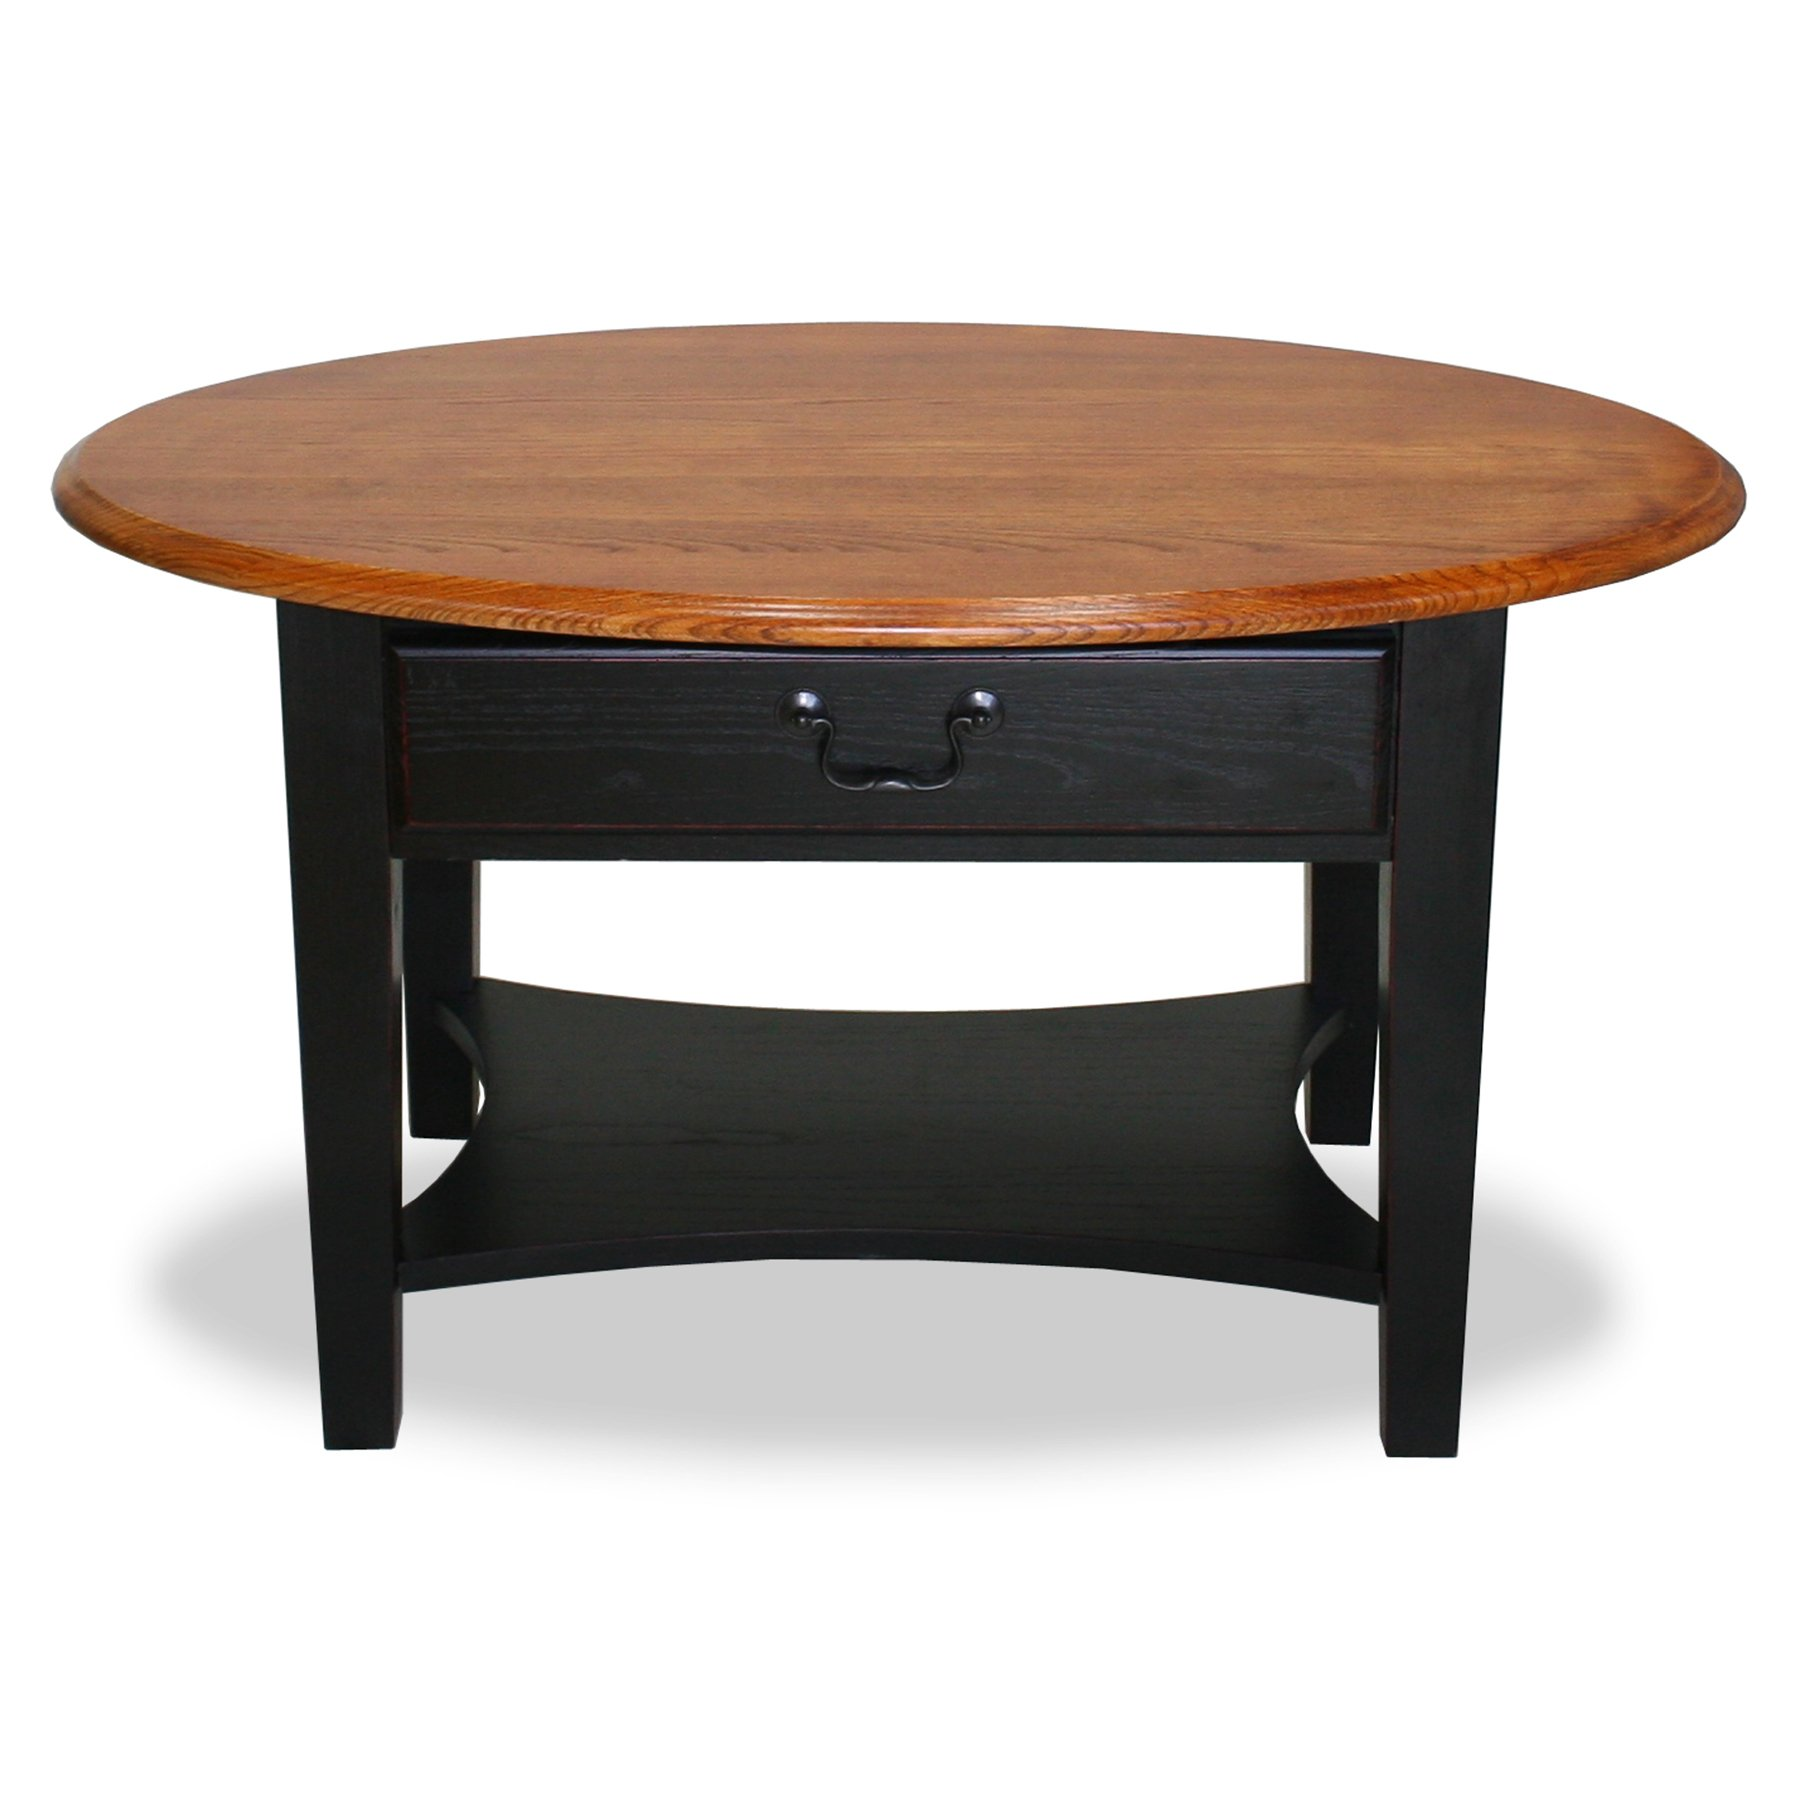 Leick Furniture Oval Coffee Table, Medium Oak/Two-Tone Slate